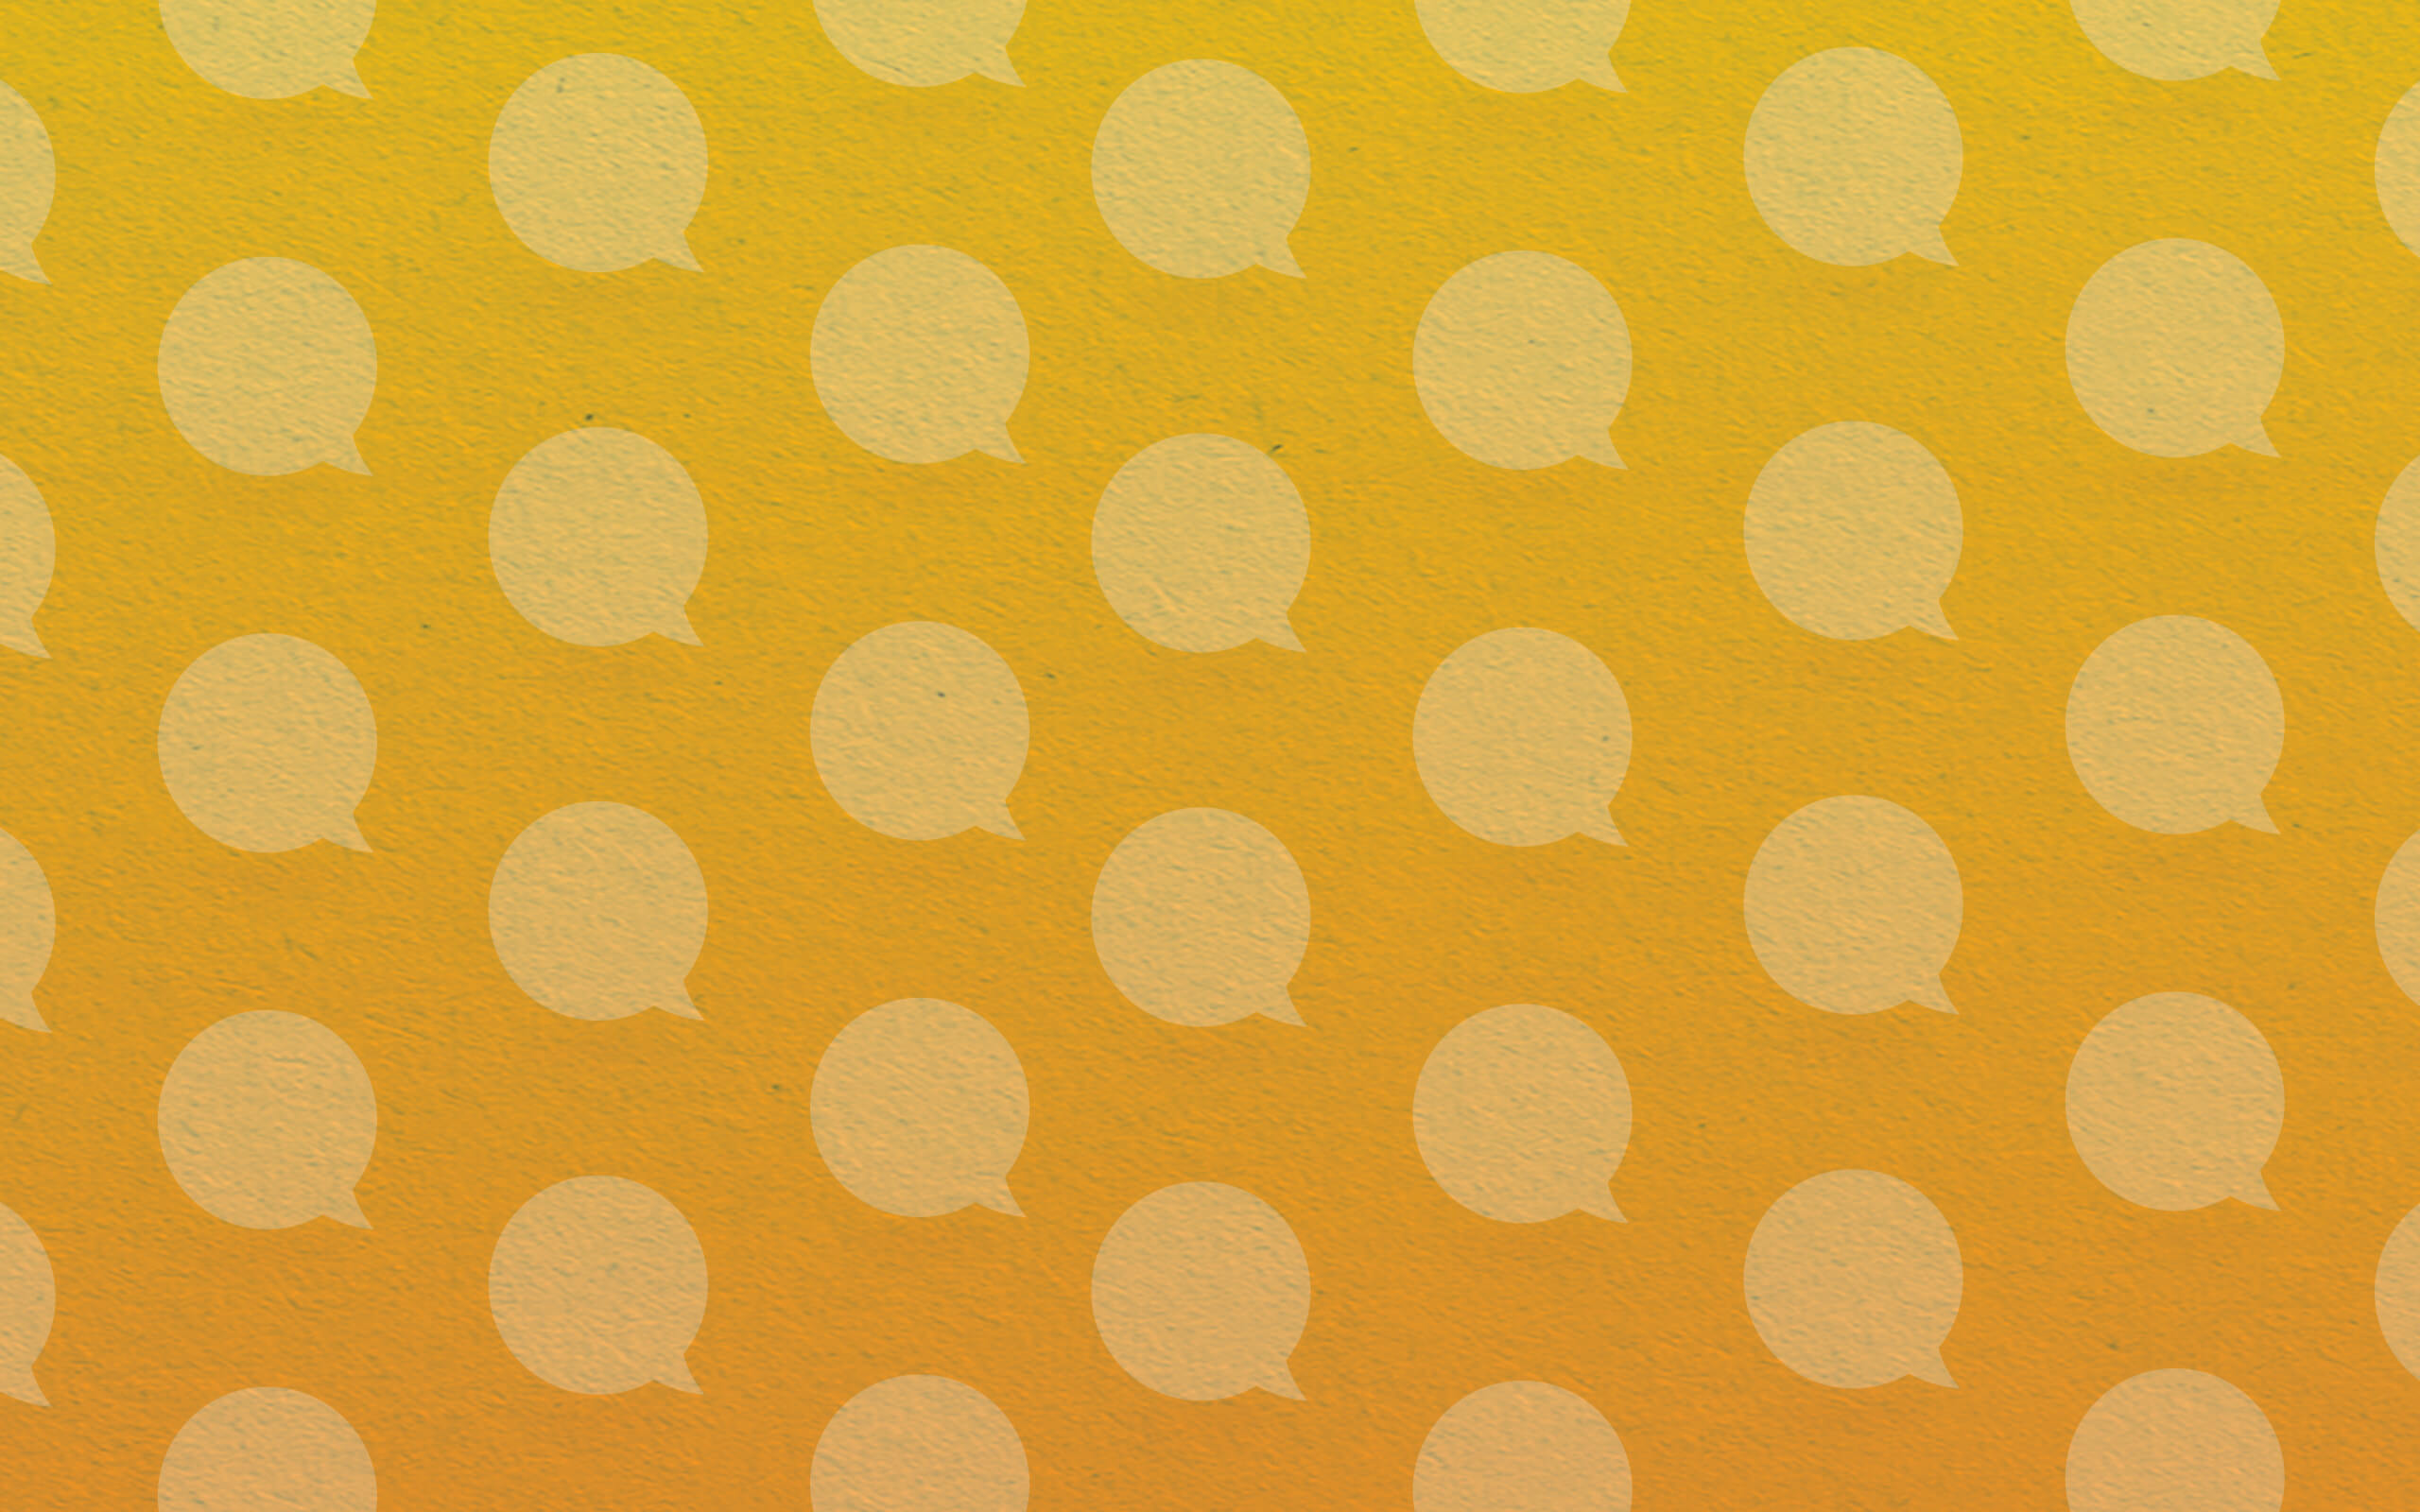 white speech bubbles on a yellow background